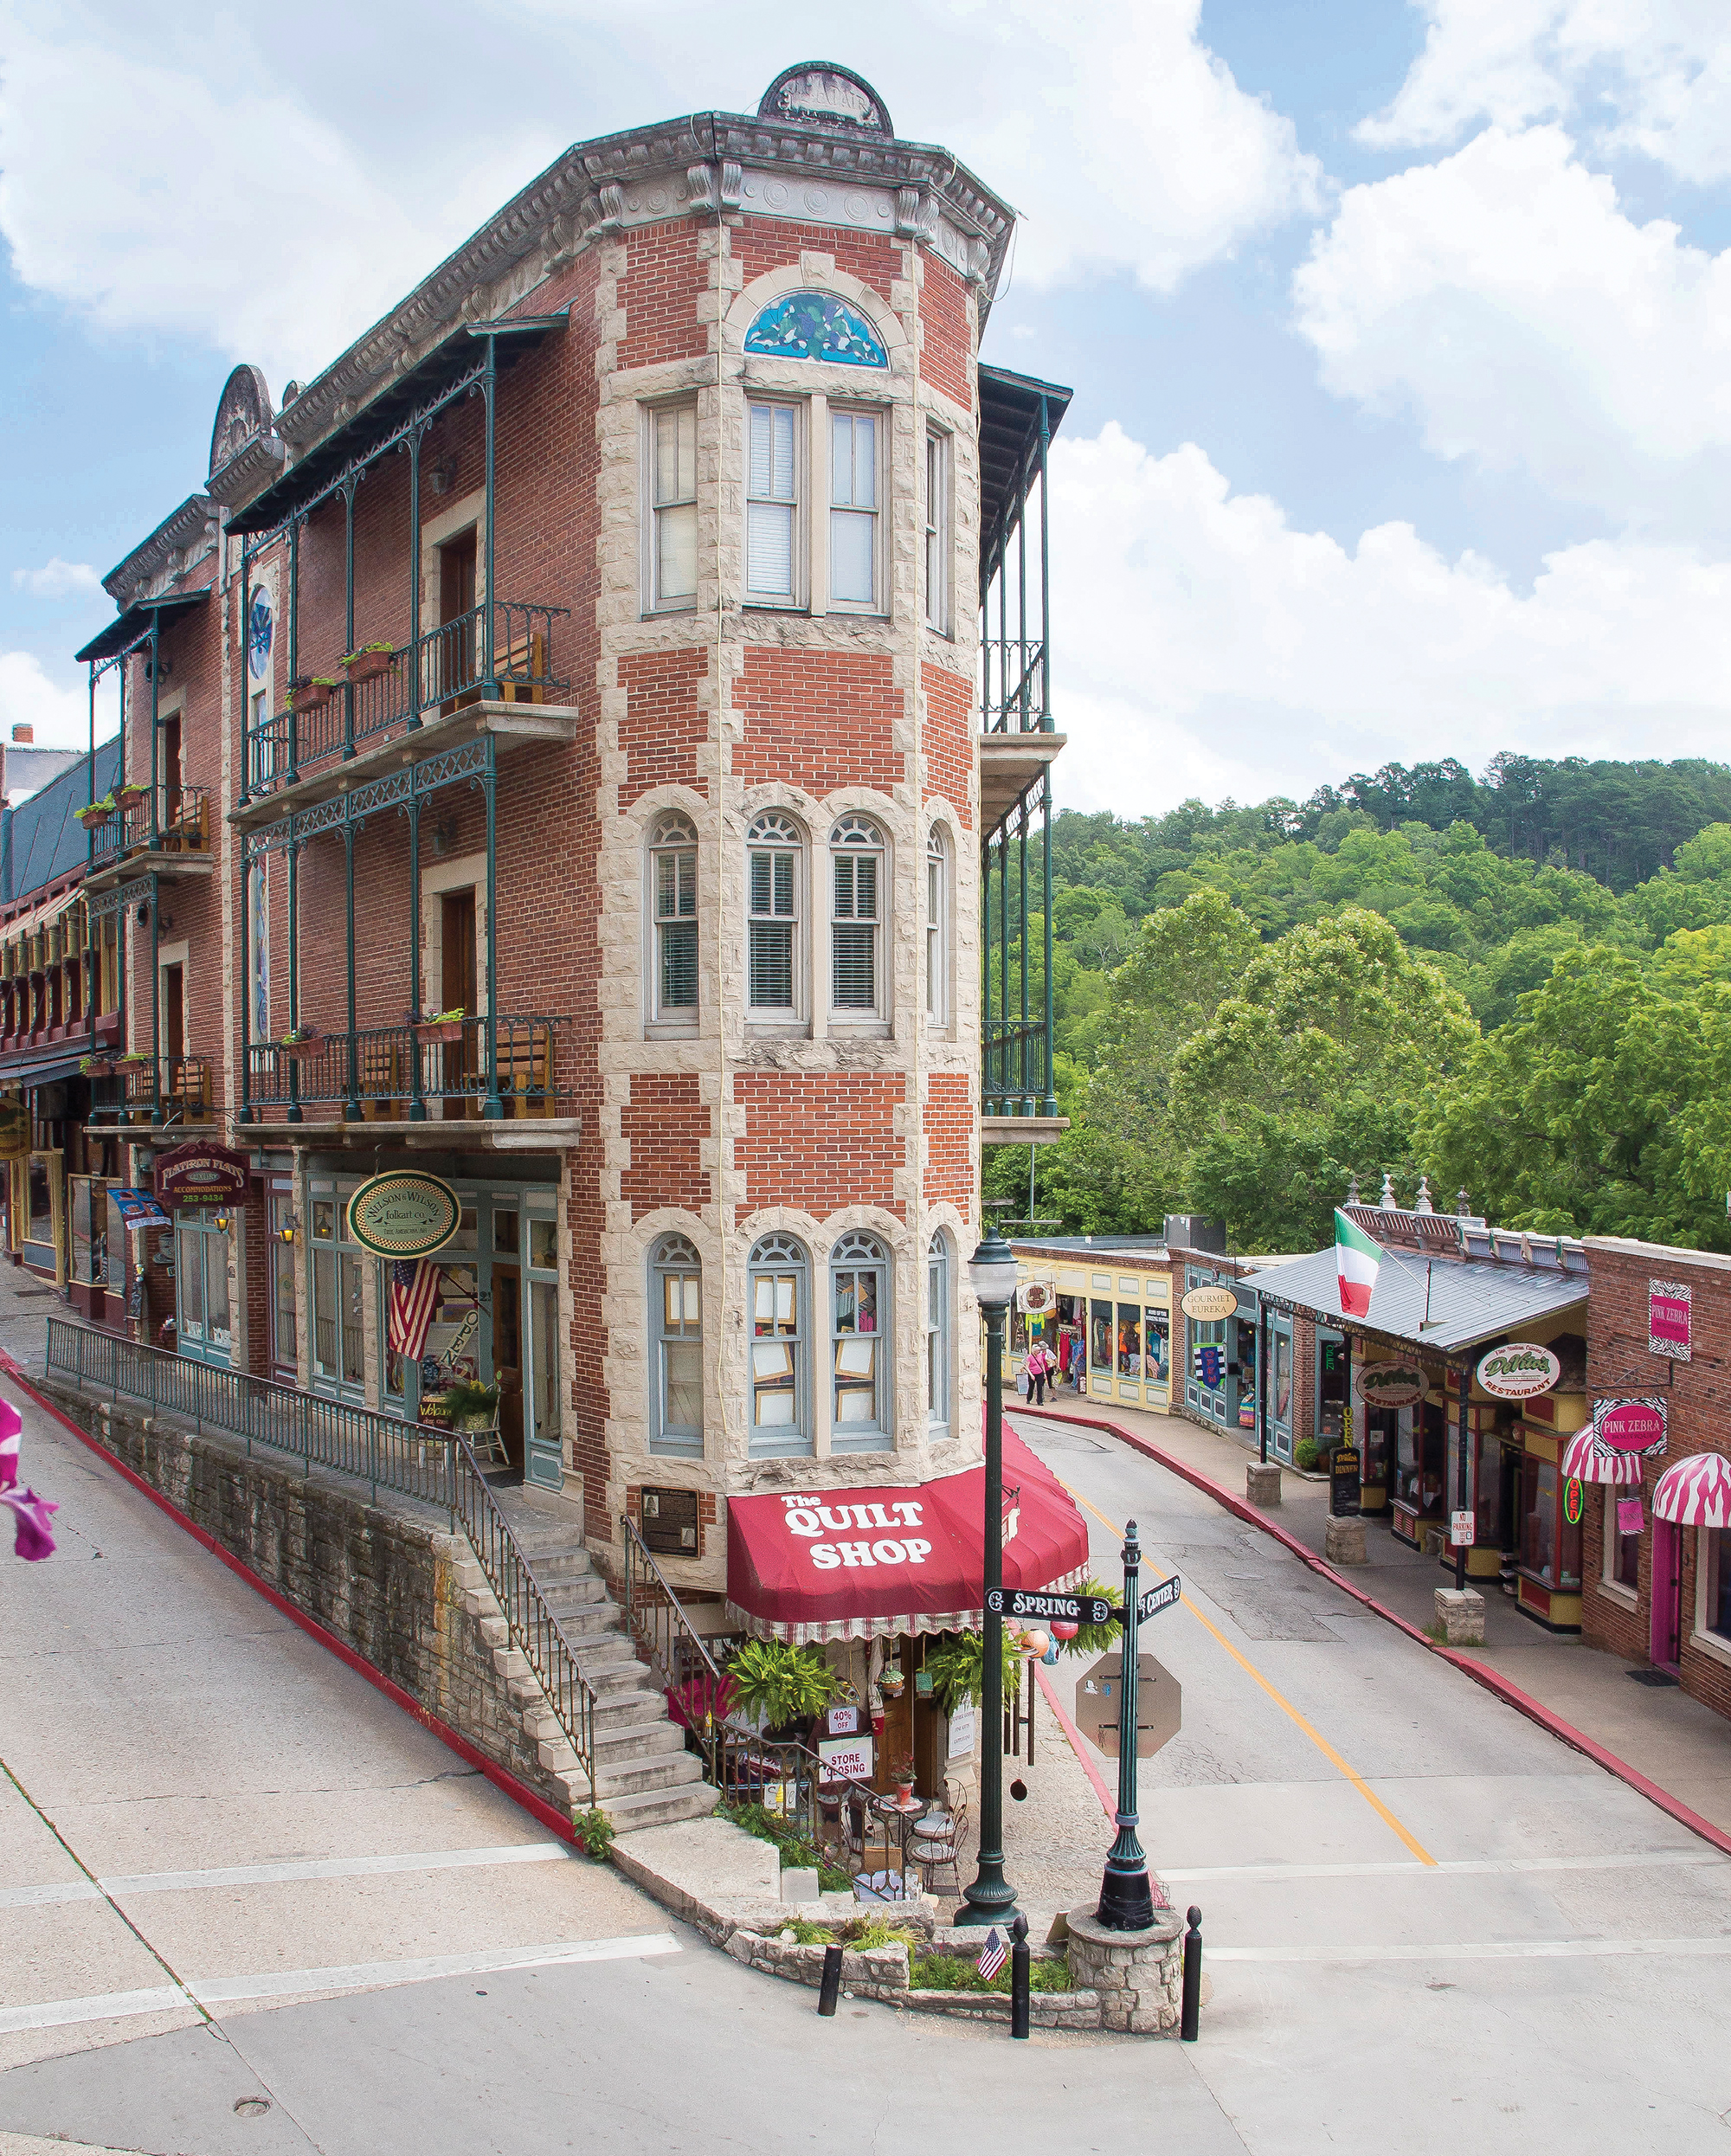 eureka springs 535 homes for sale in eureka springs, ar browse photos, see new properties, get open house info, and research neighborhoods on trulia.